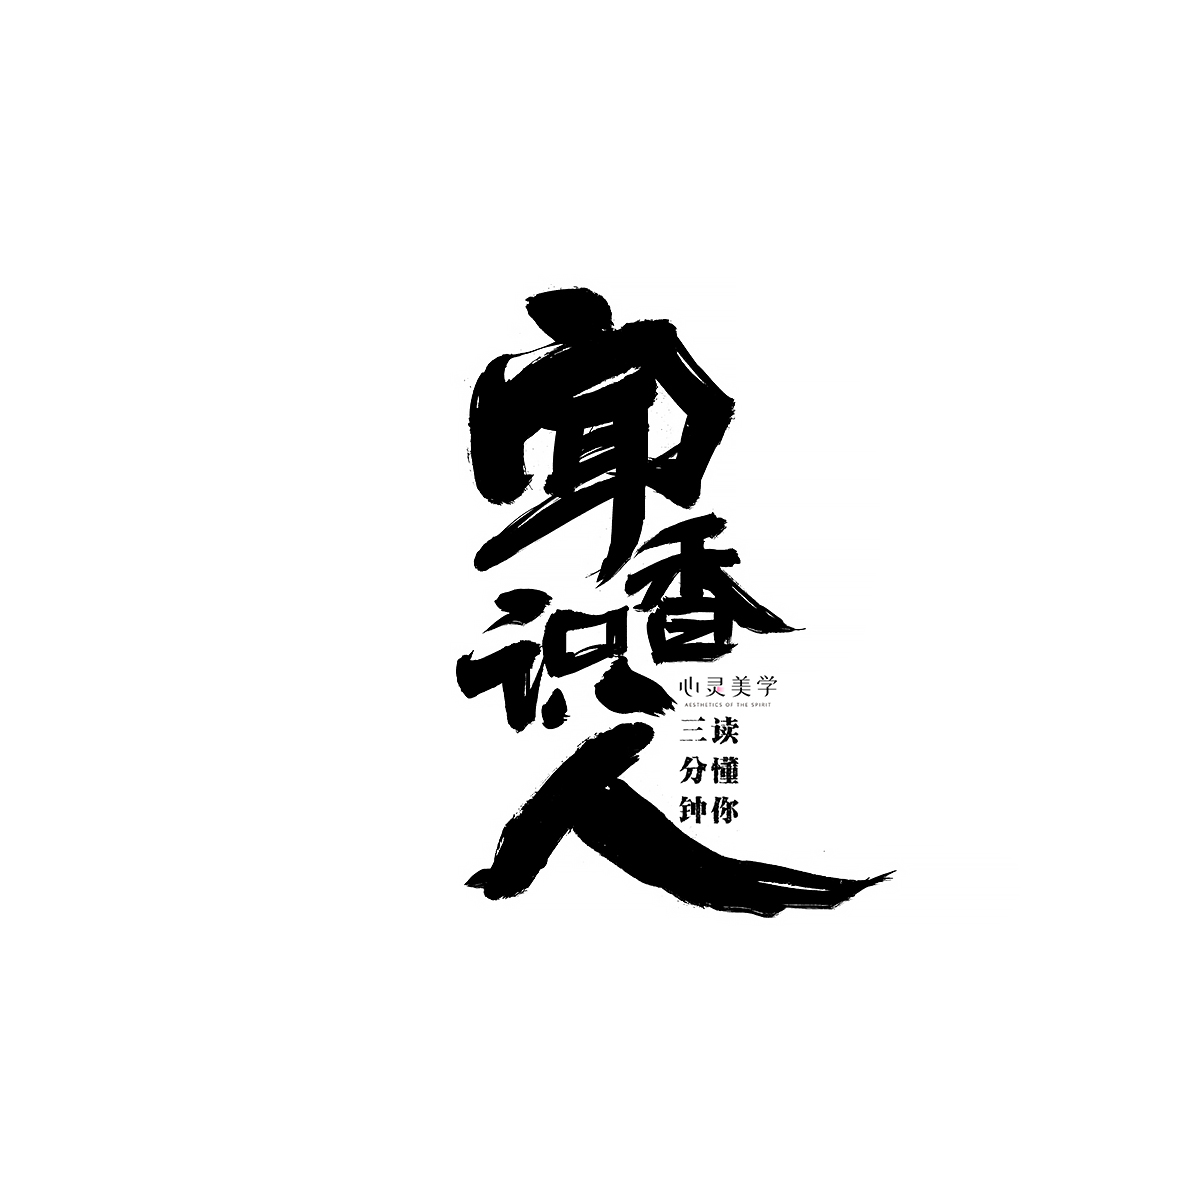 22P Collection of the latest Chinese font design schemes in 2021 #.626